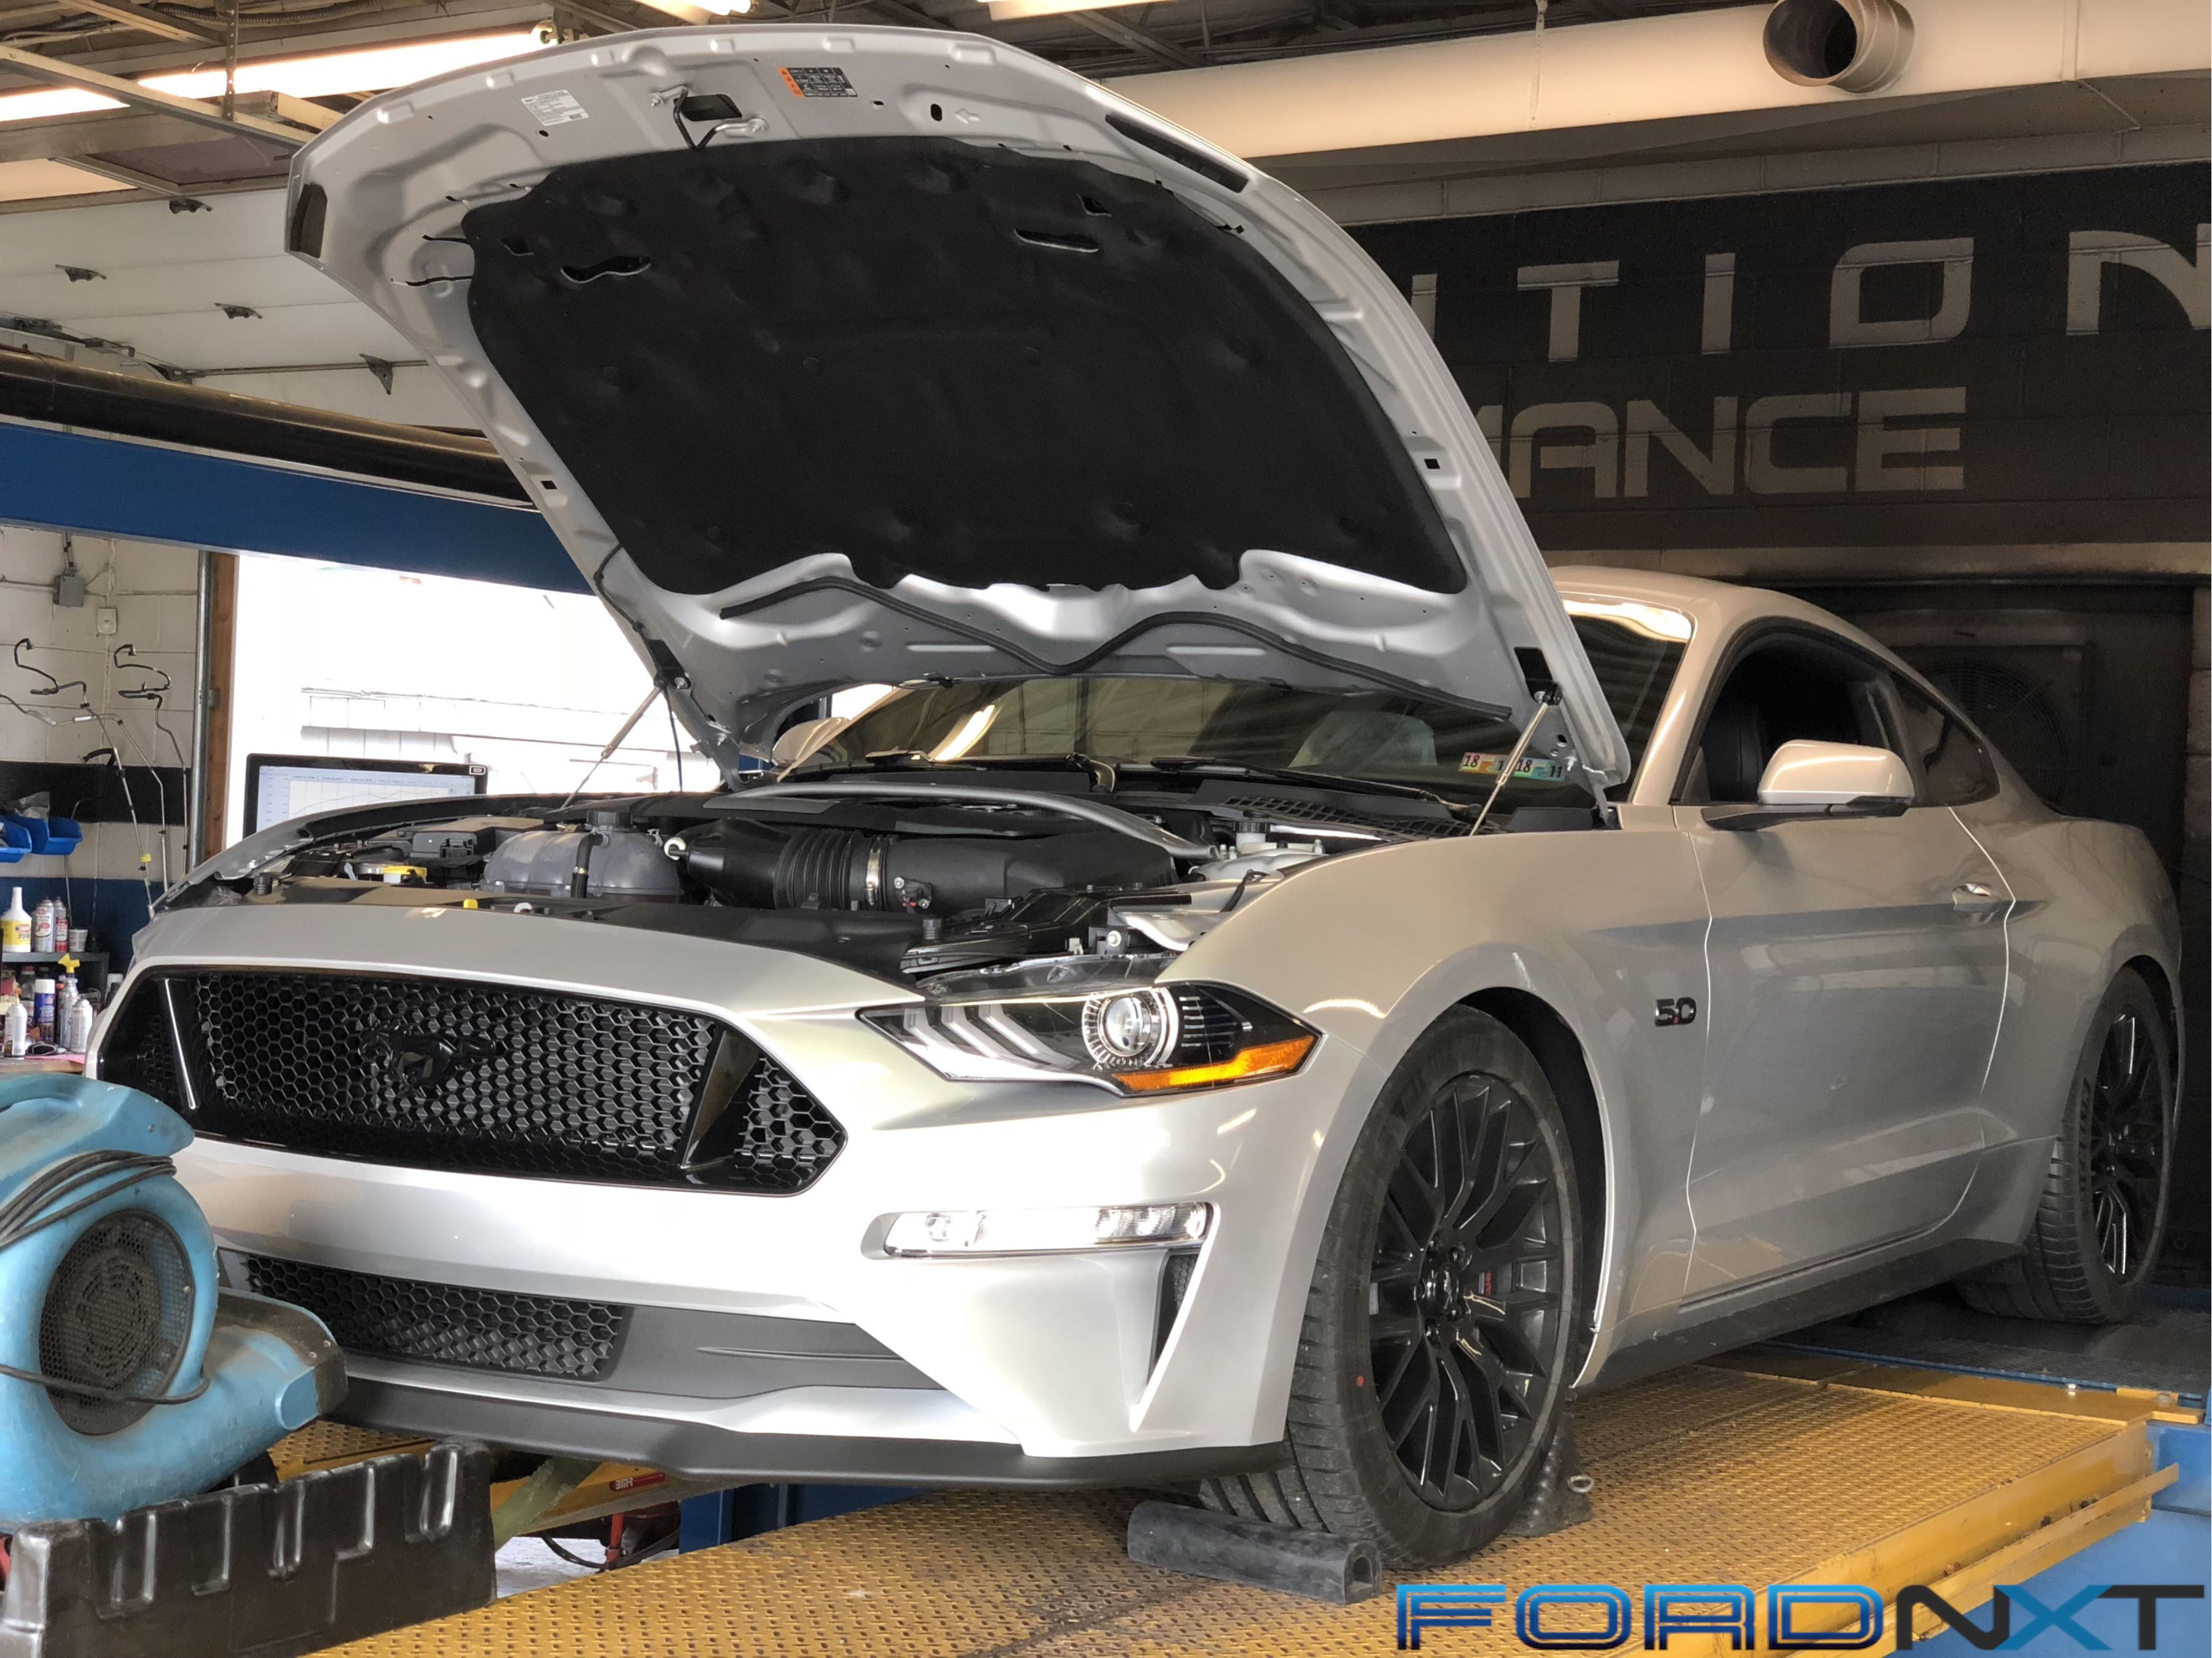 Bolt-On NA 2018 Mustang Blasts Out Over 500 RWHP